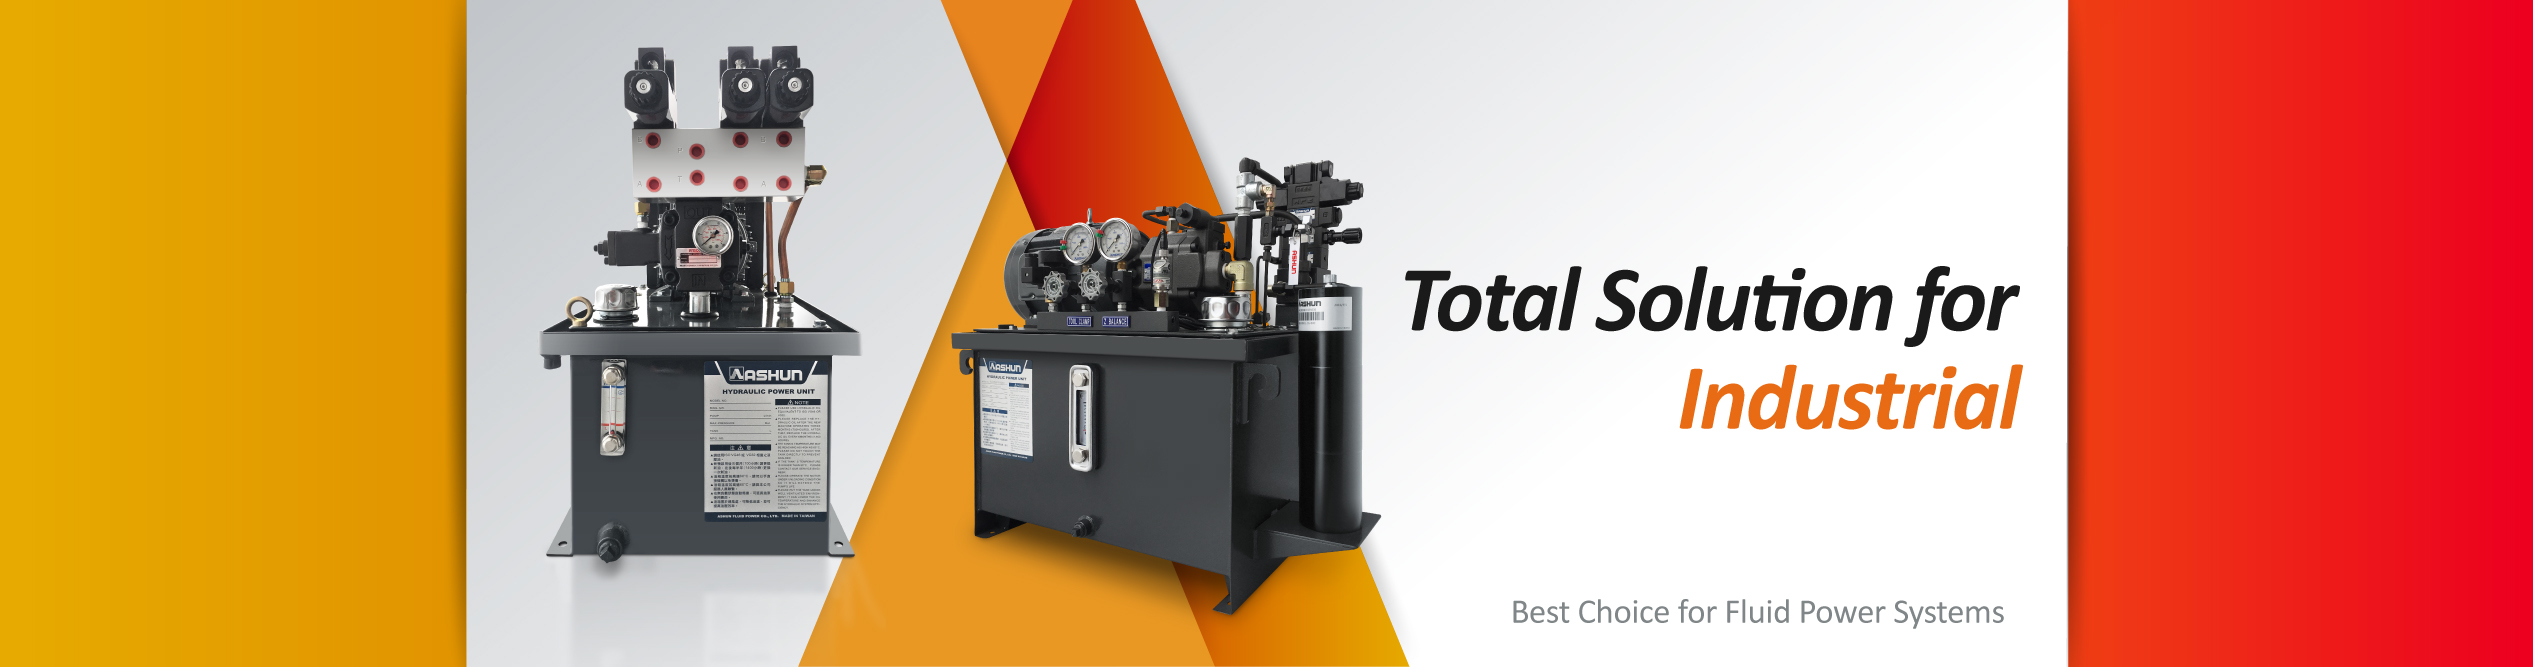 Total Solution for Industrial